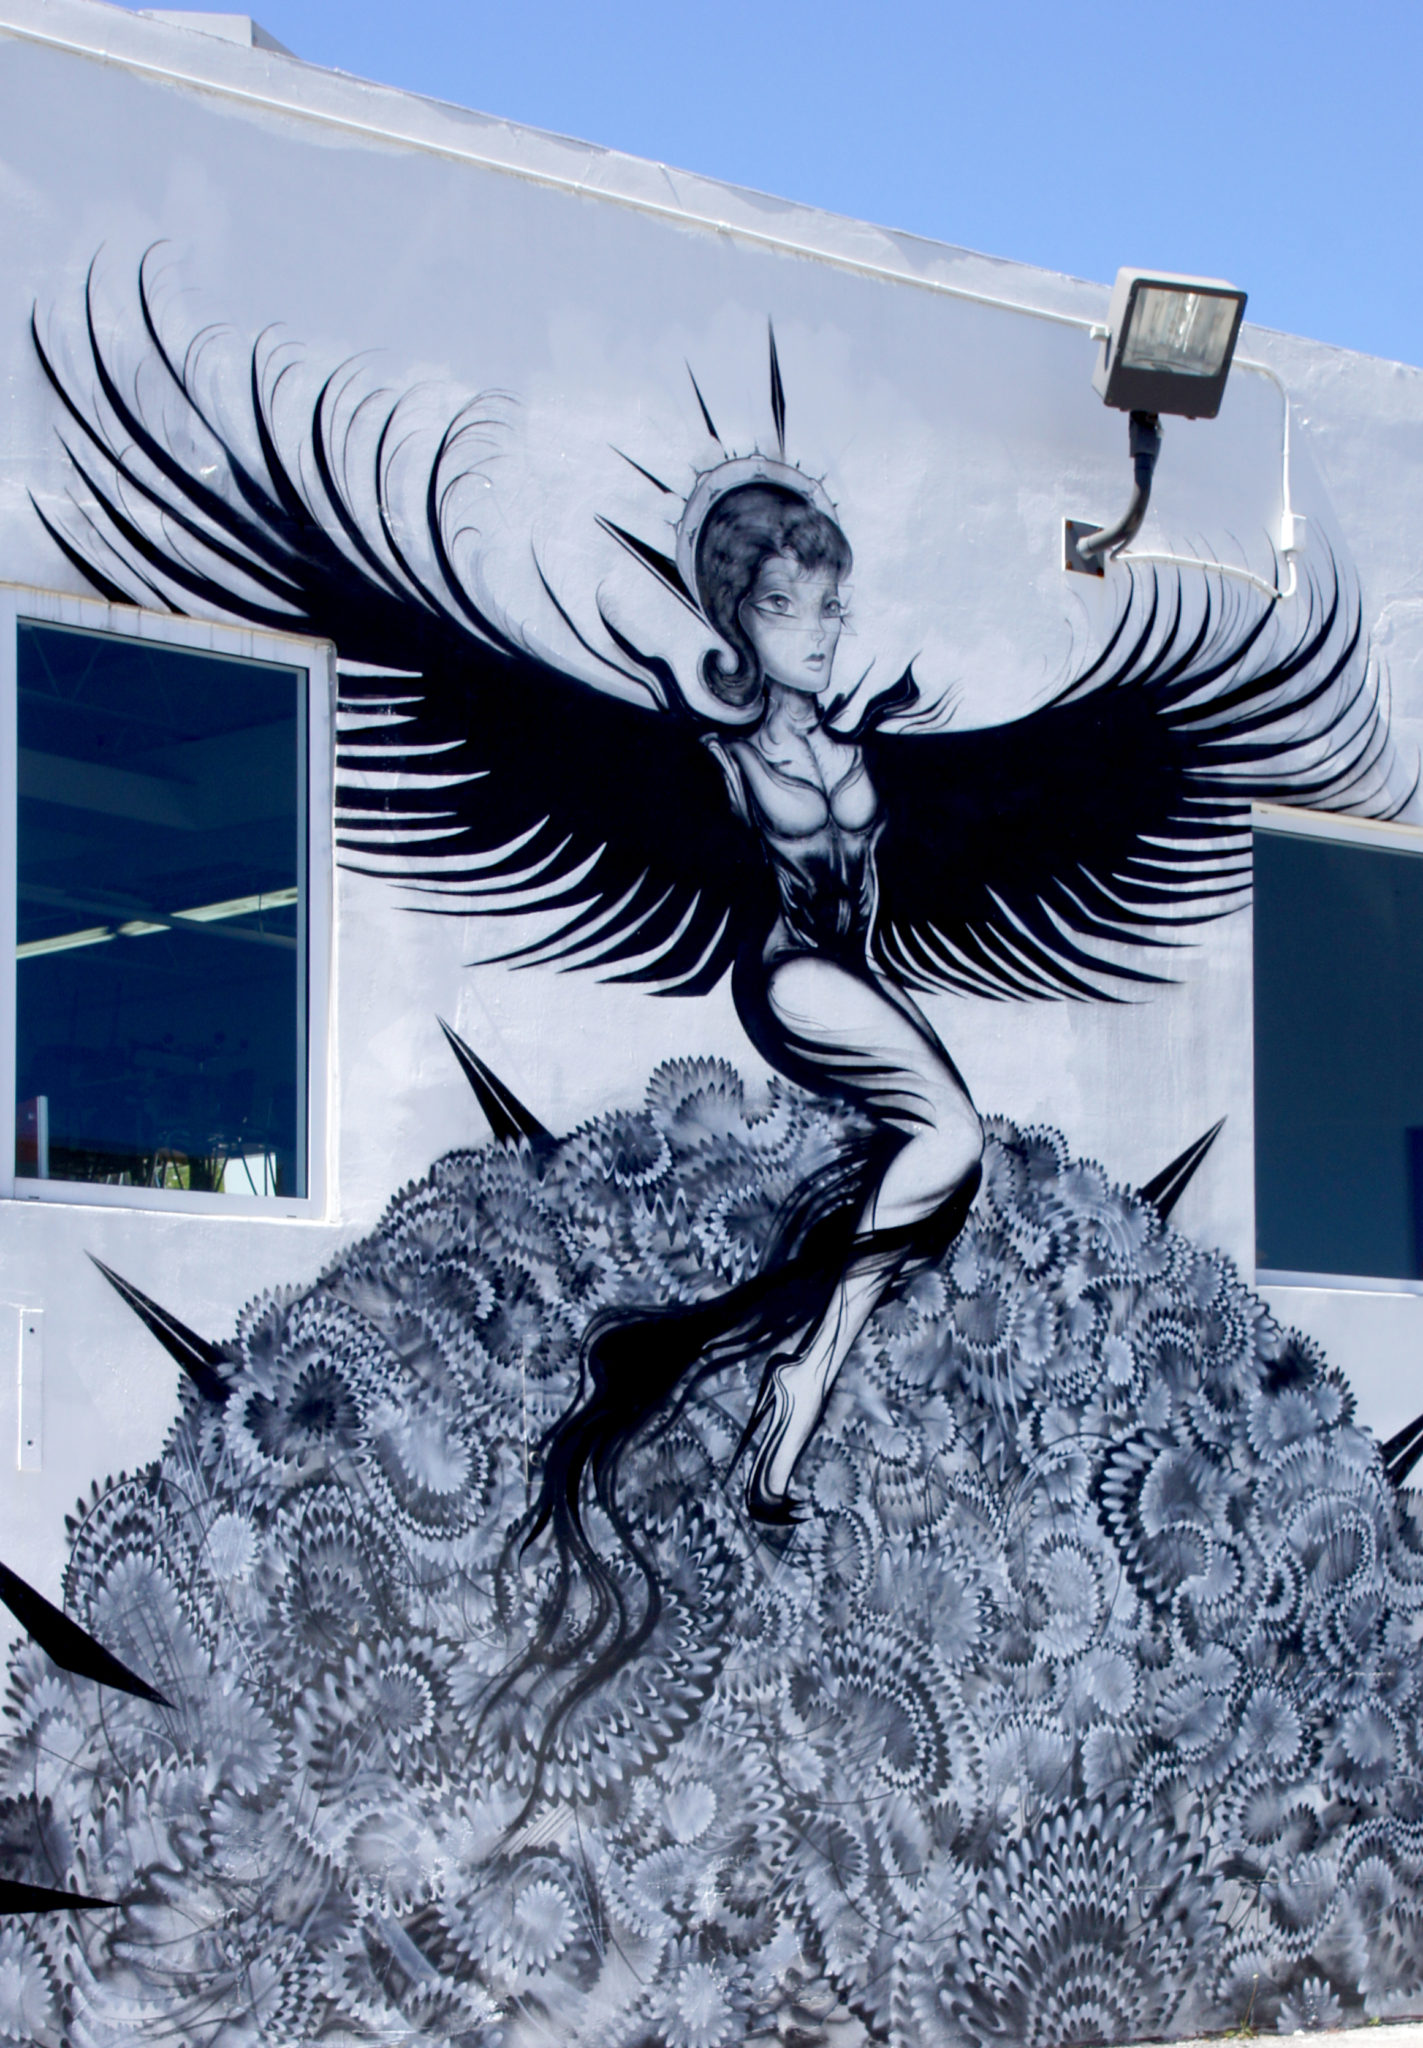 Hema_Florida_Wynwood_walls3